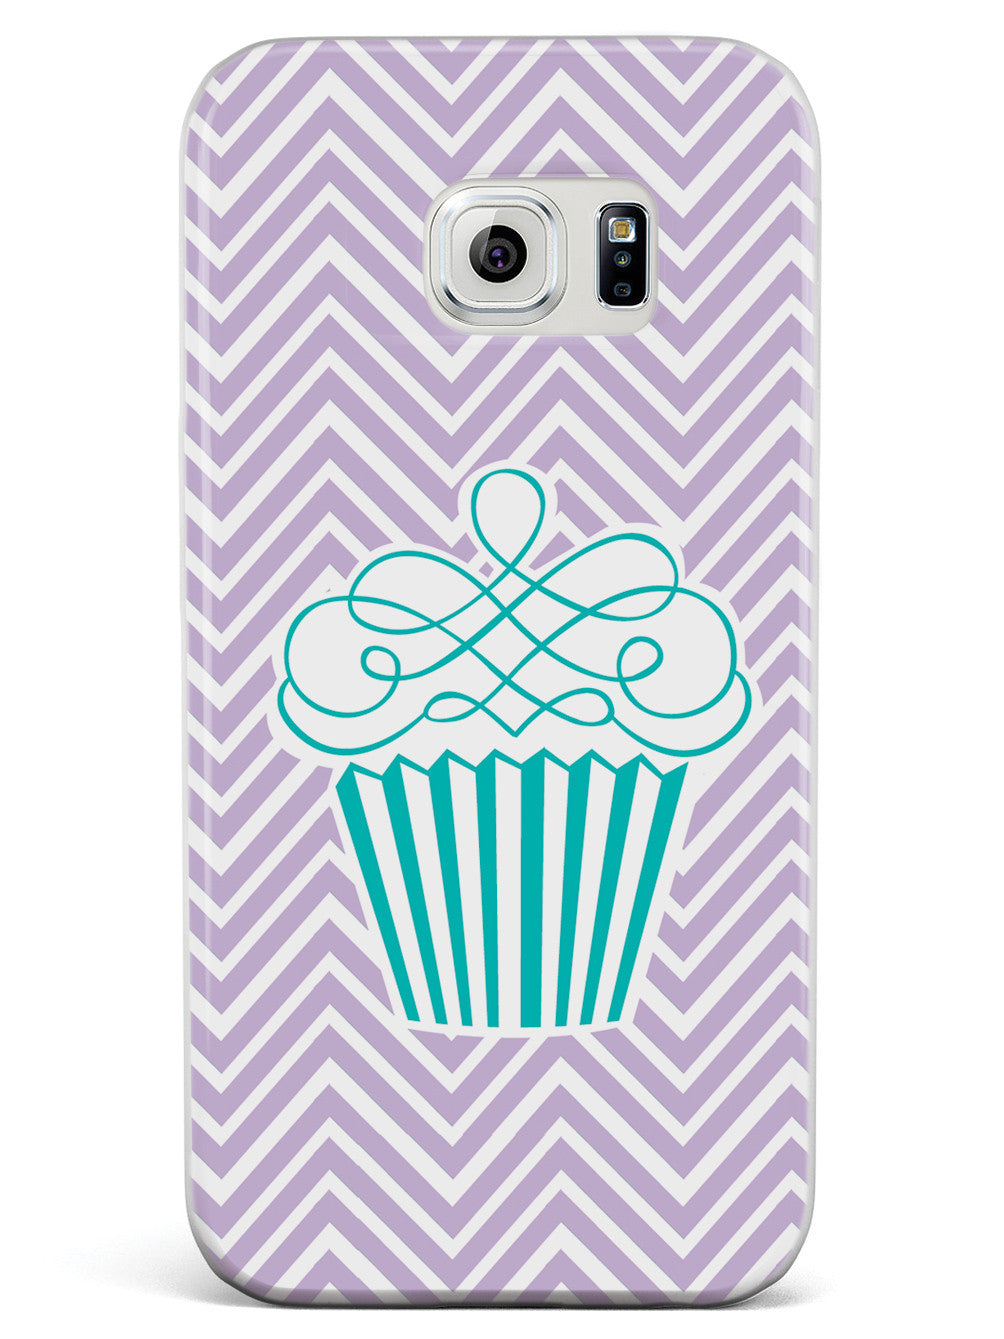 Cupcake Design with Chevron Pattern Case